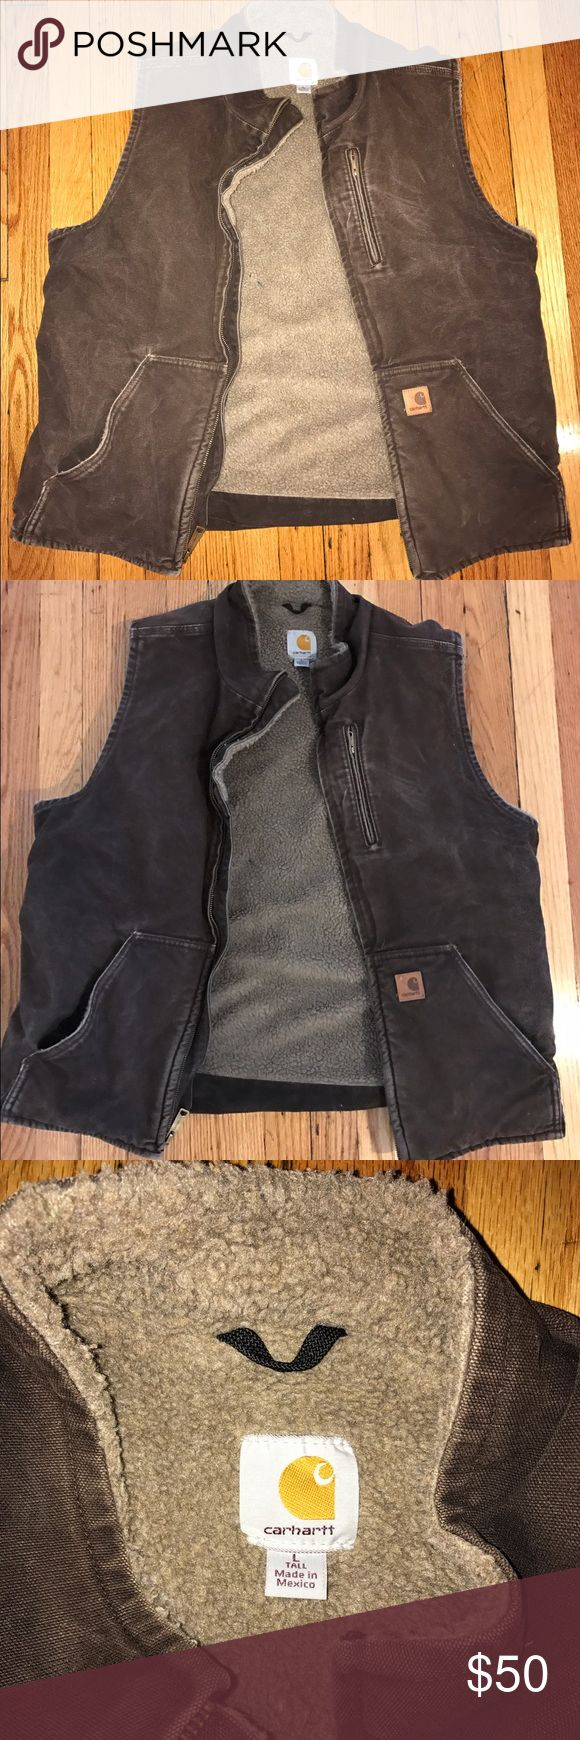 Carhartt sherpa lined sandstone mock neck vest Comes from a smoke and pet free home.                         Will ship next day from NY.                                                For sale only, feel free to make an offer!!                          This Carhartt sherpa lined sandstone mock neck vest is perfect for layering. Made of 12-ounce, 100% cotton sandstone duck. Features a sherpa lining. Two large, sherpa-lined front pockets, two inside pockets and map pocket with zipper closure…